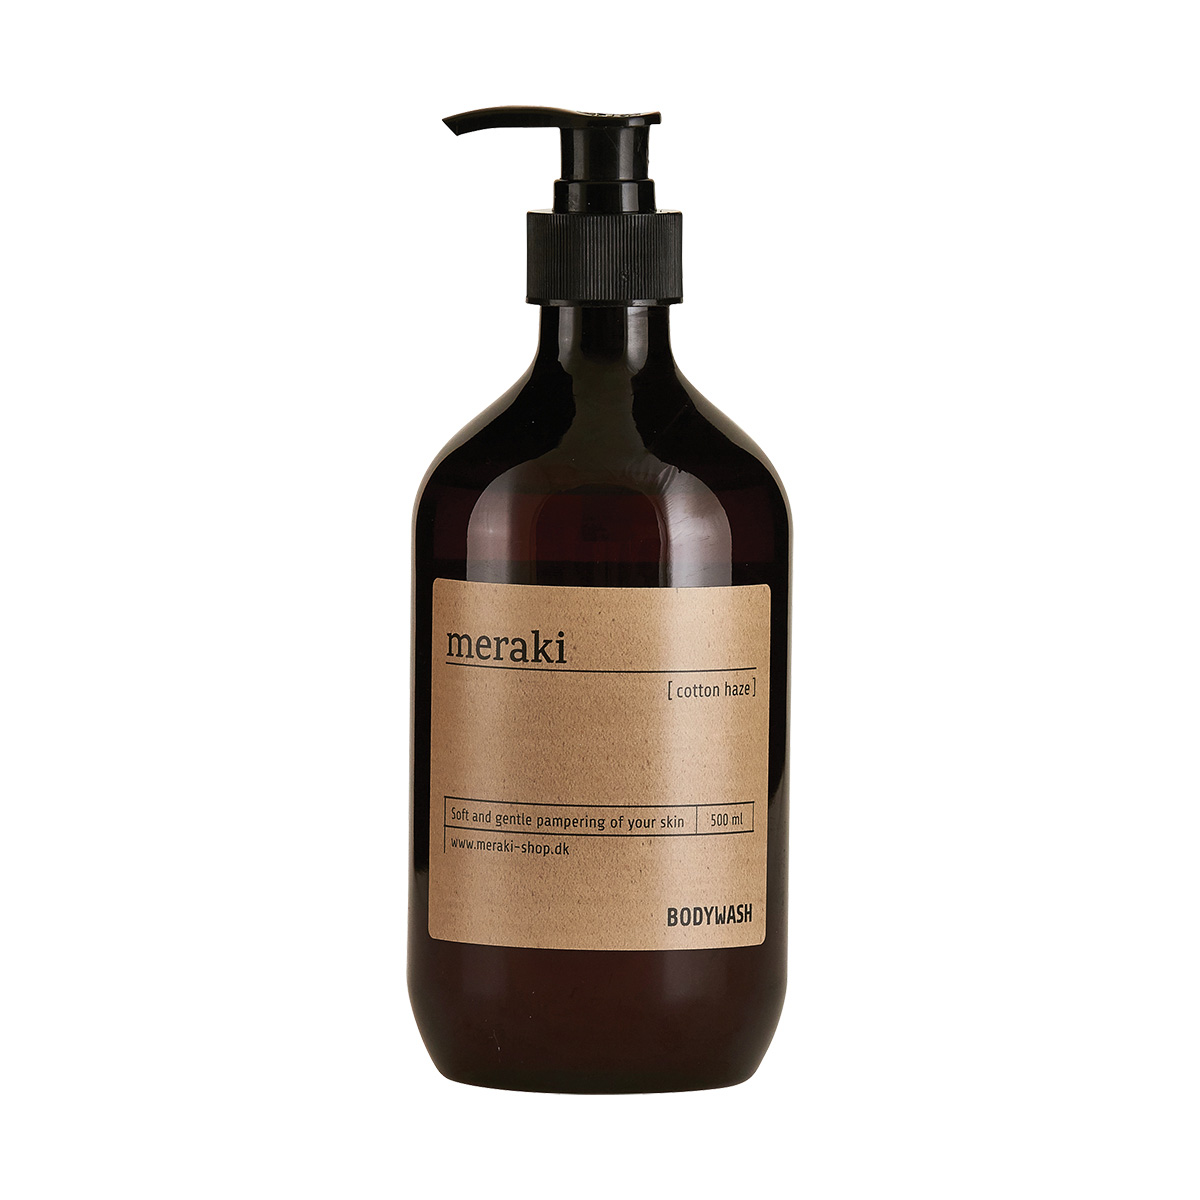 Image of   Meraki Body wash, Cotton haze, 500 ml.